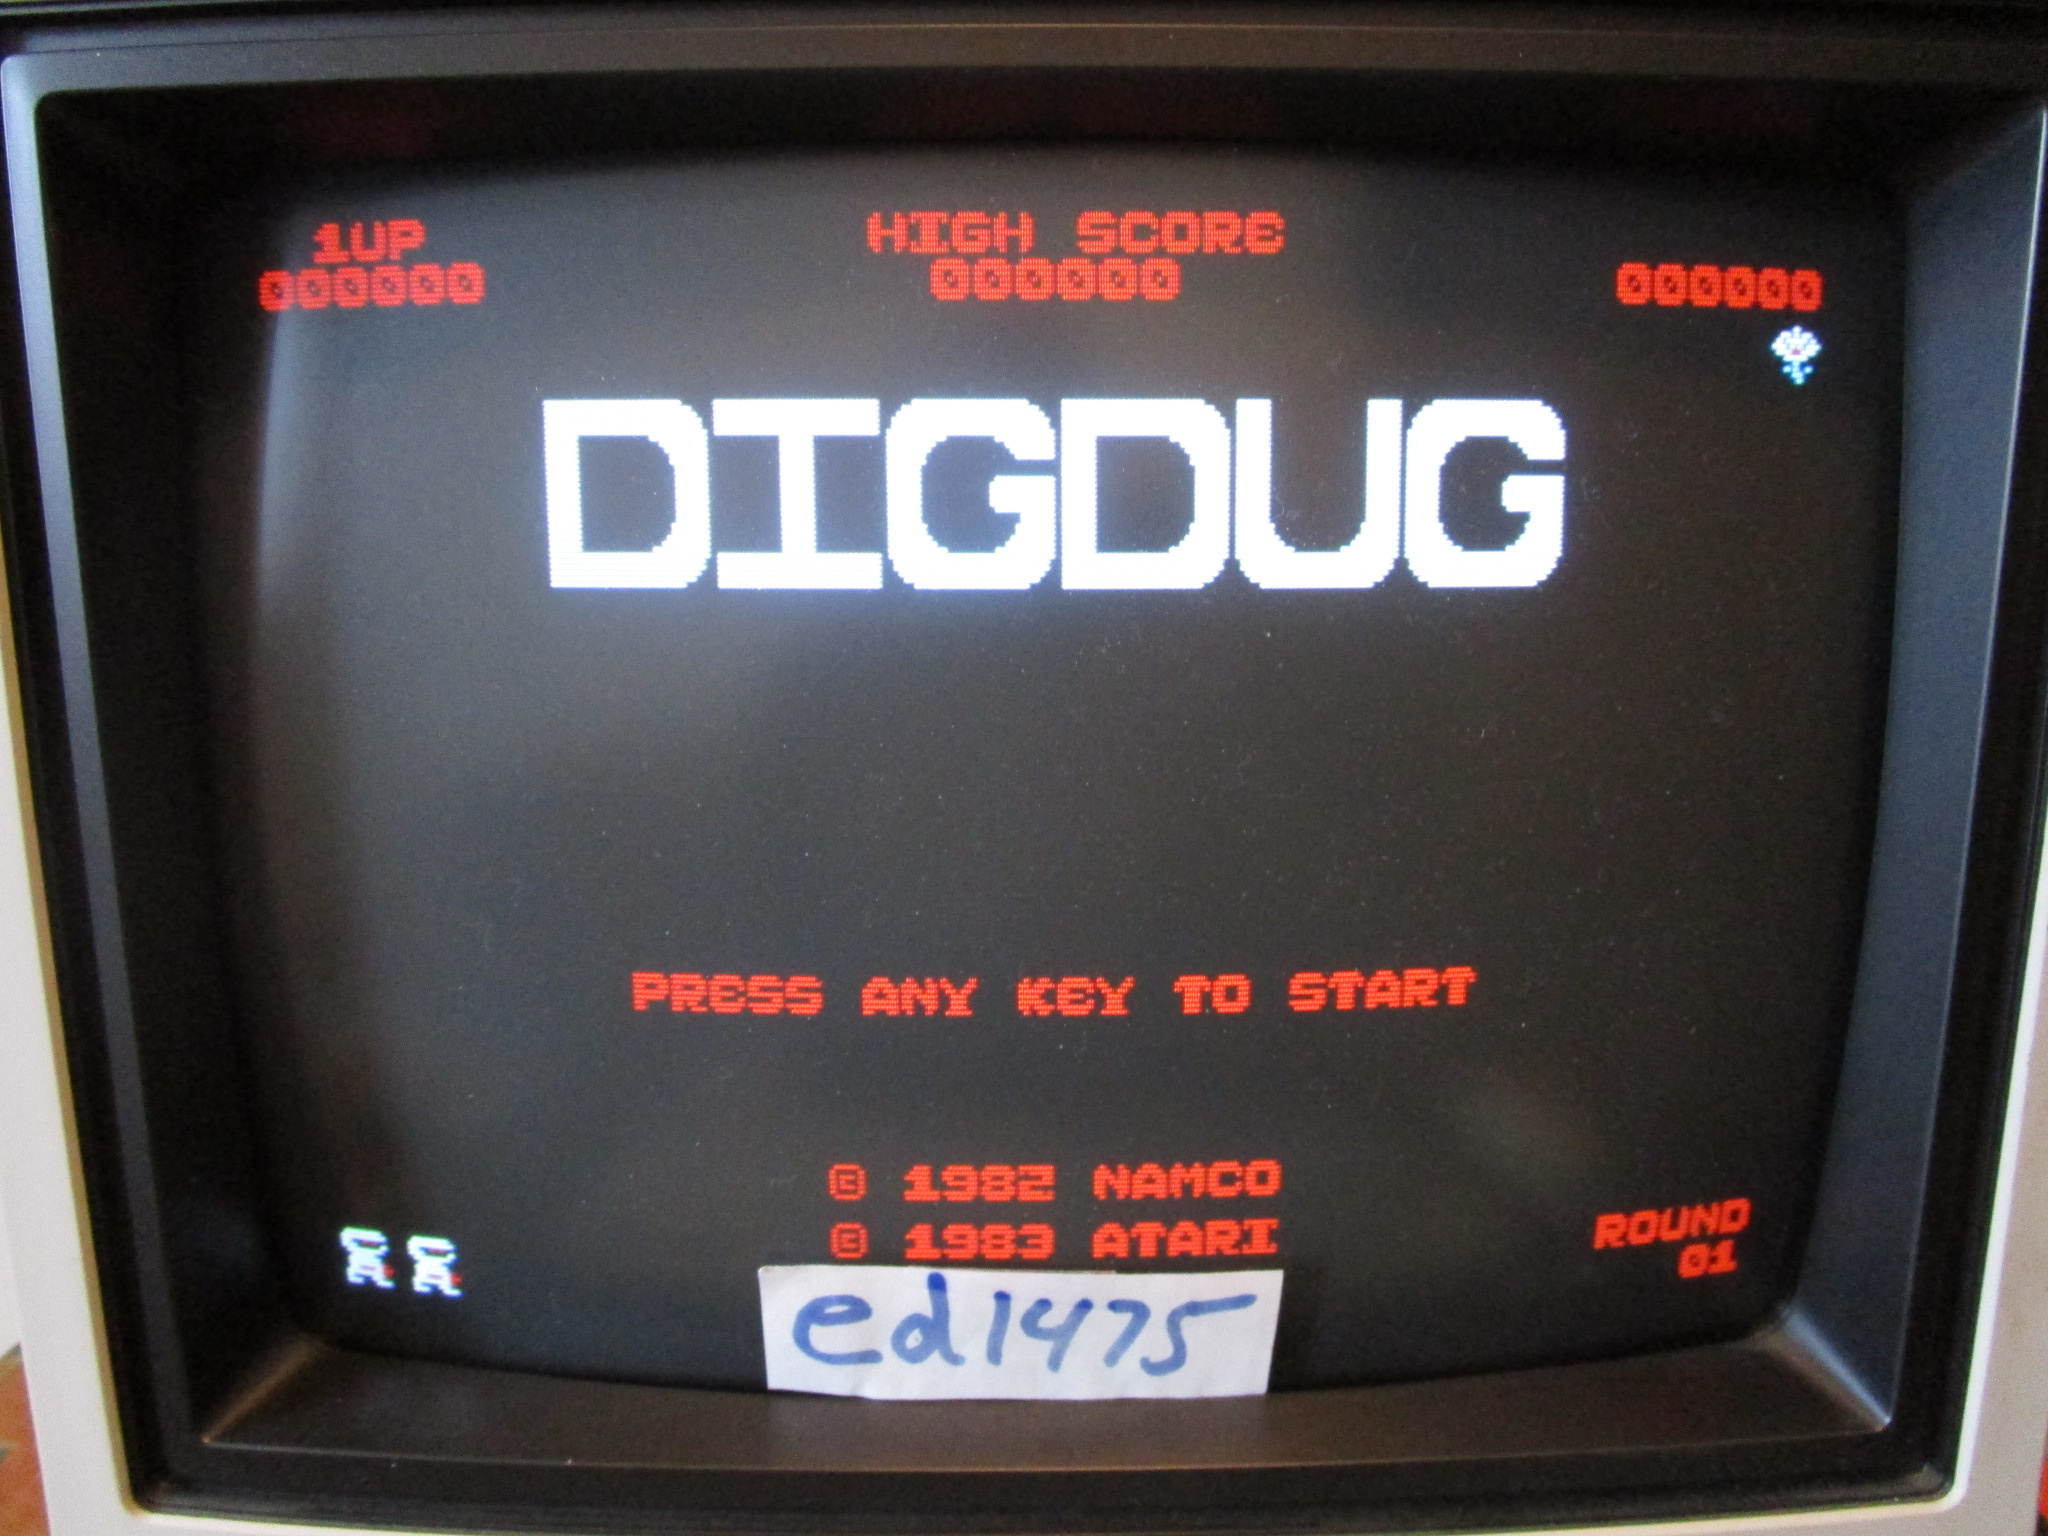 ed1475: Dig Dug (PC) 9,550 points on 2015-02-04 00:01:44